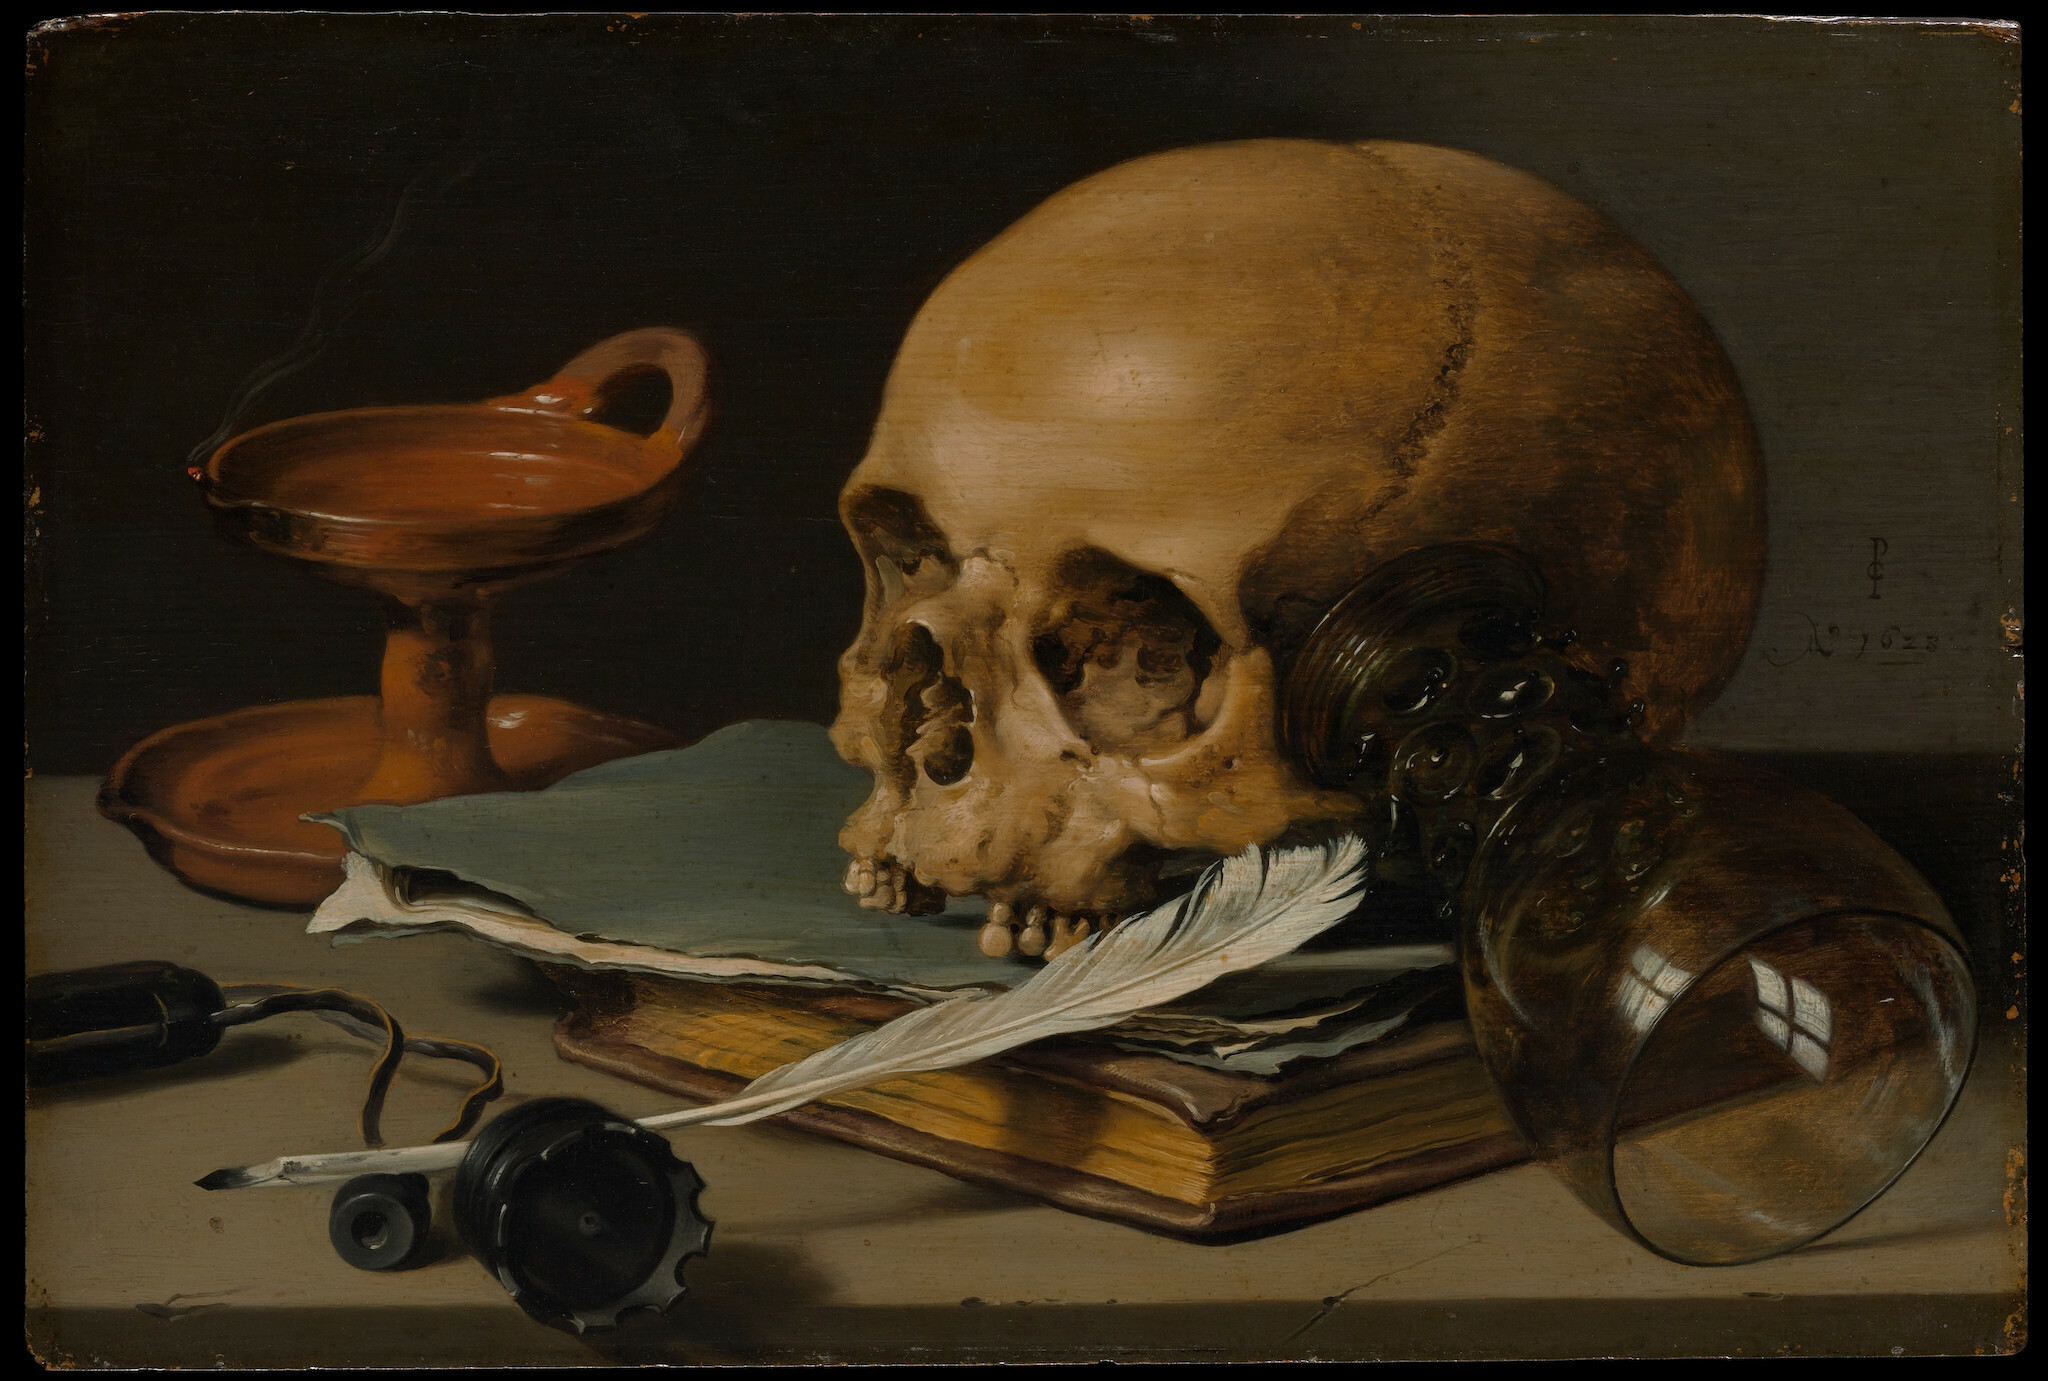 Pieter Claesz, Still Life with a Skull and a Writing Quill, 1628